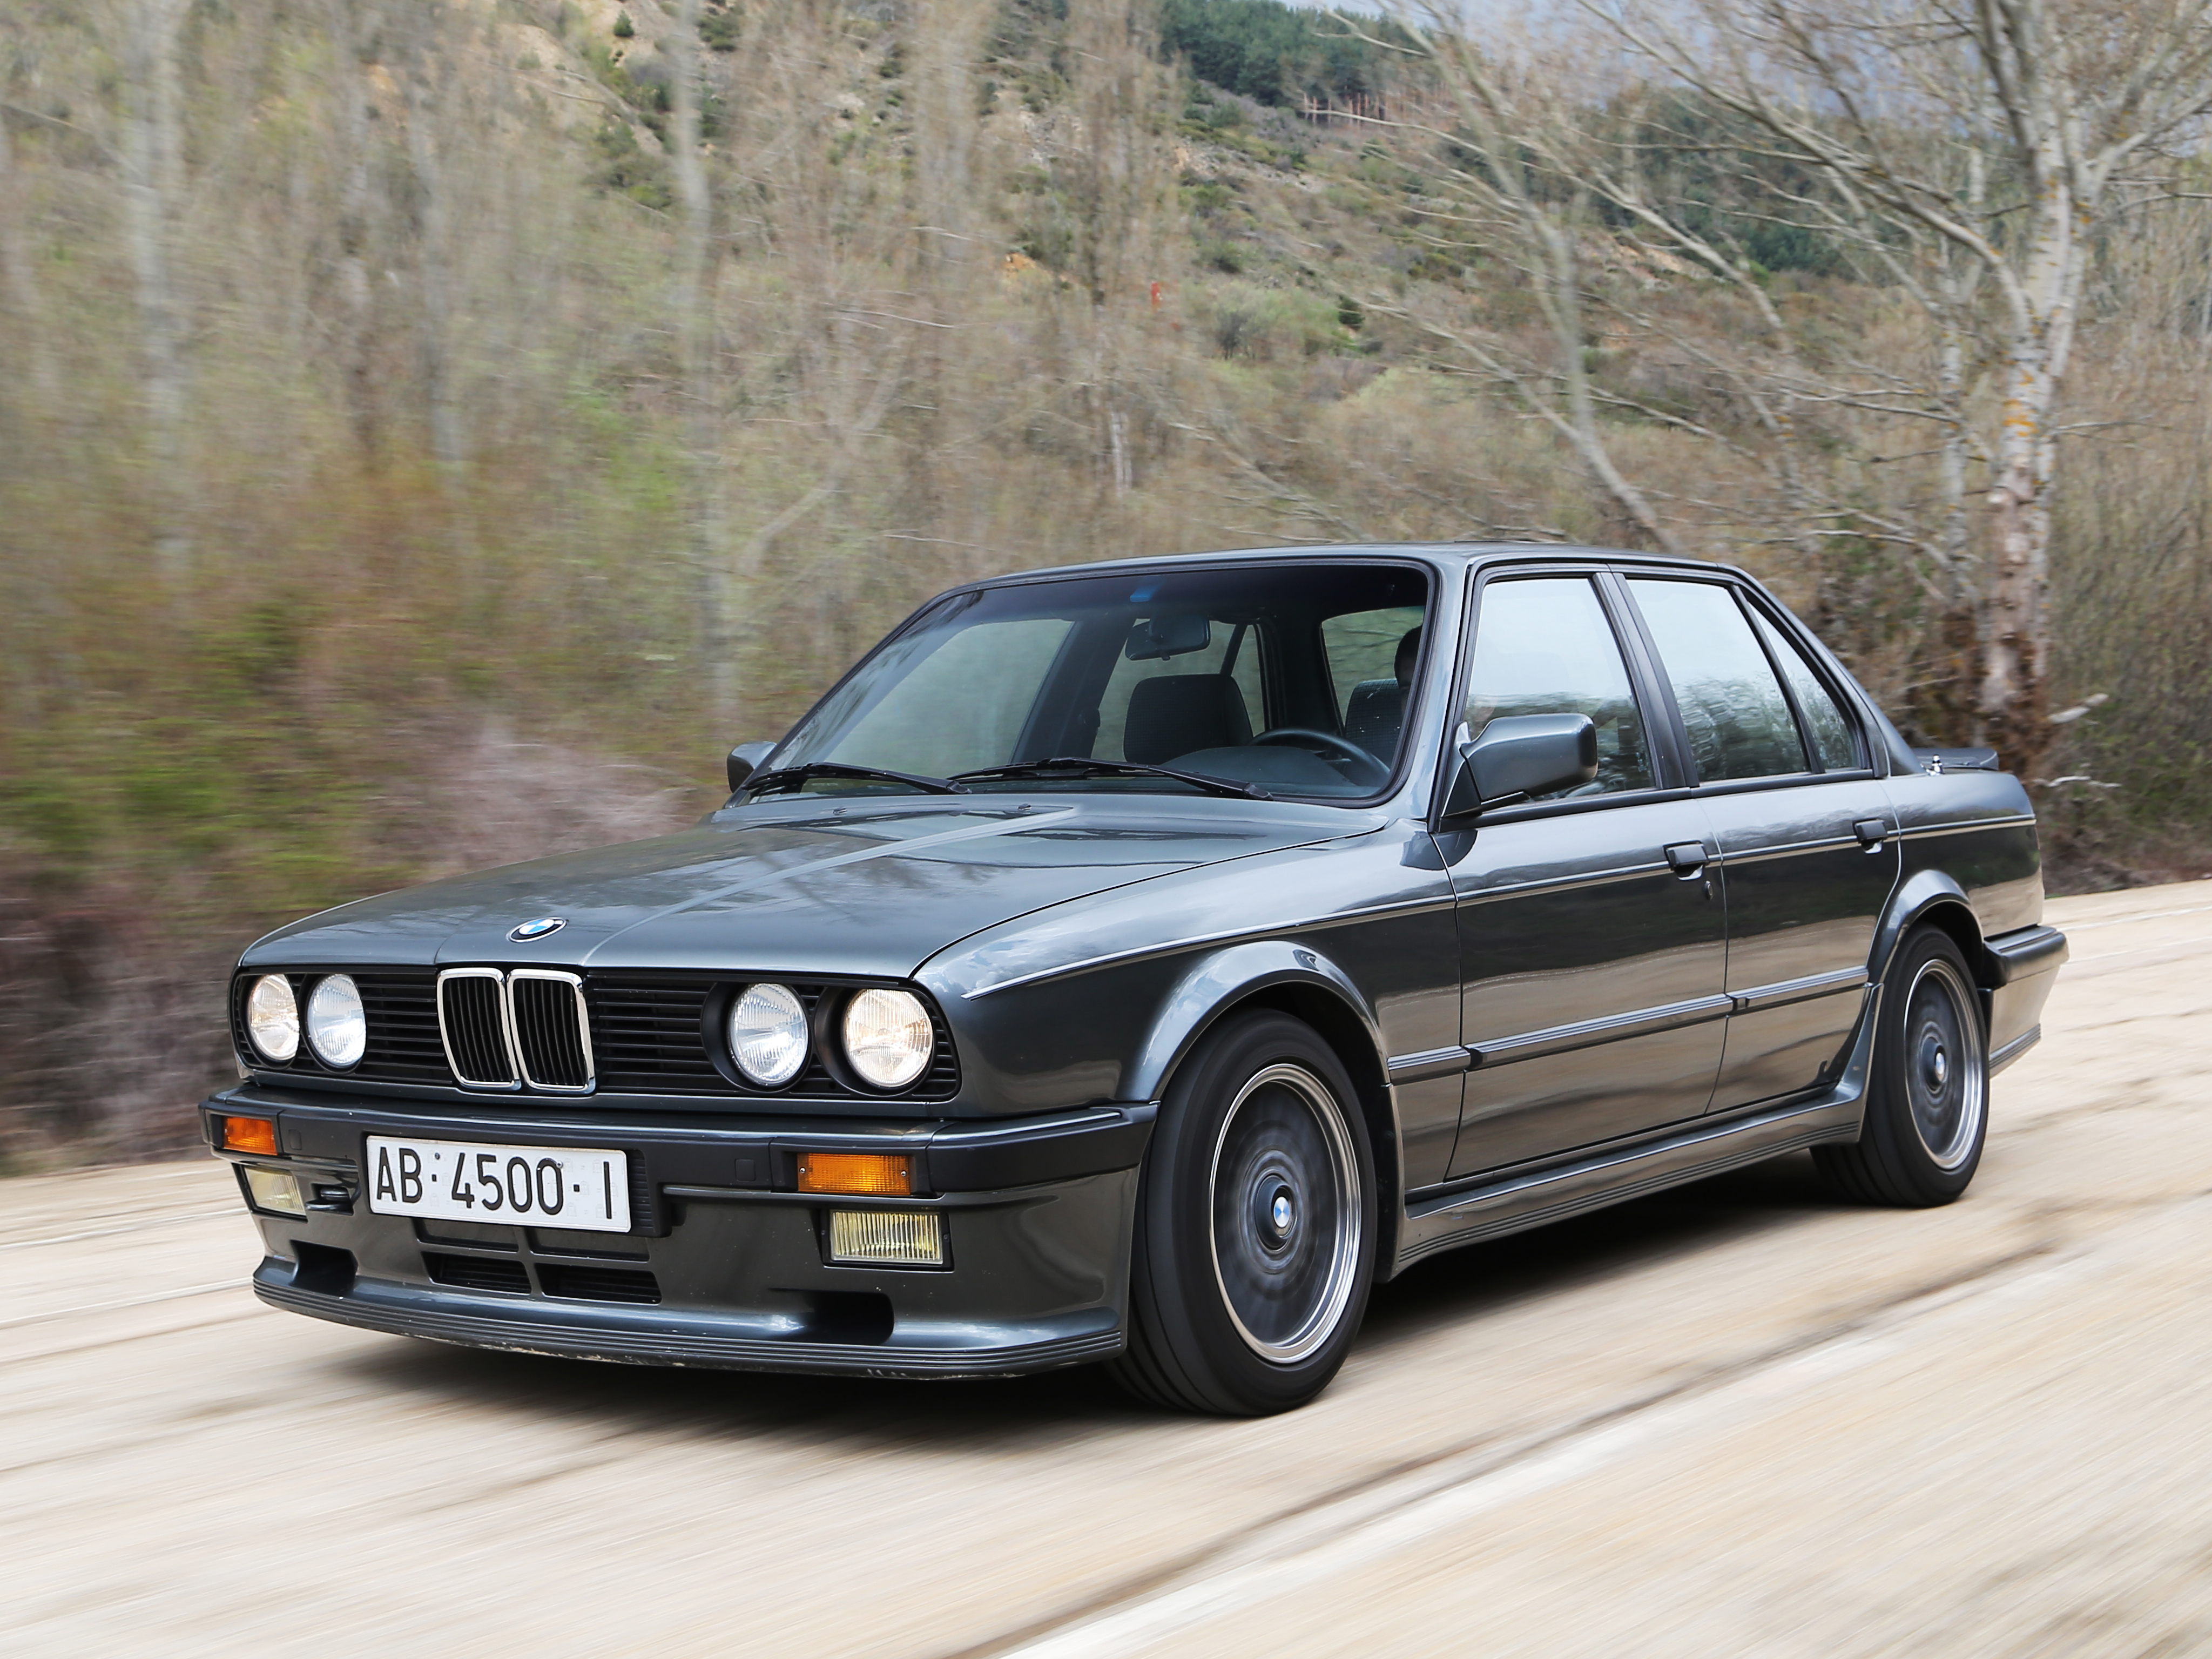 BMW 3 series 325i 1984 photo - 9